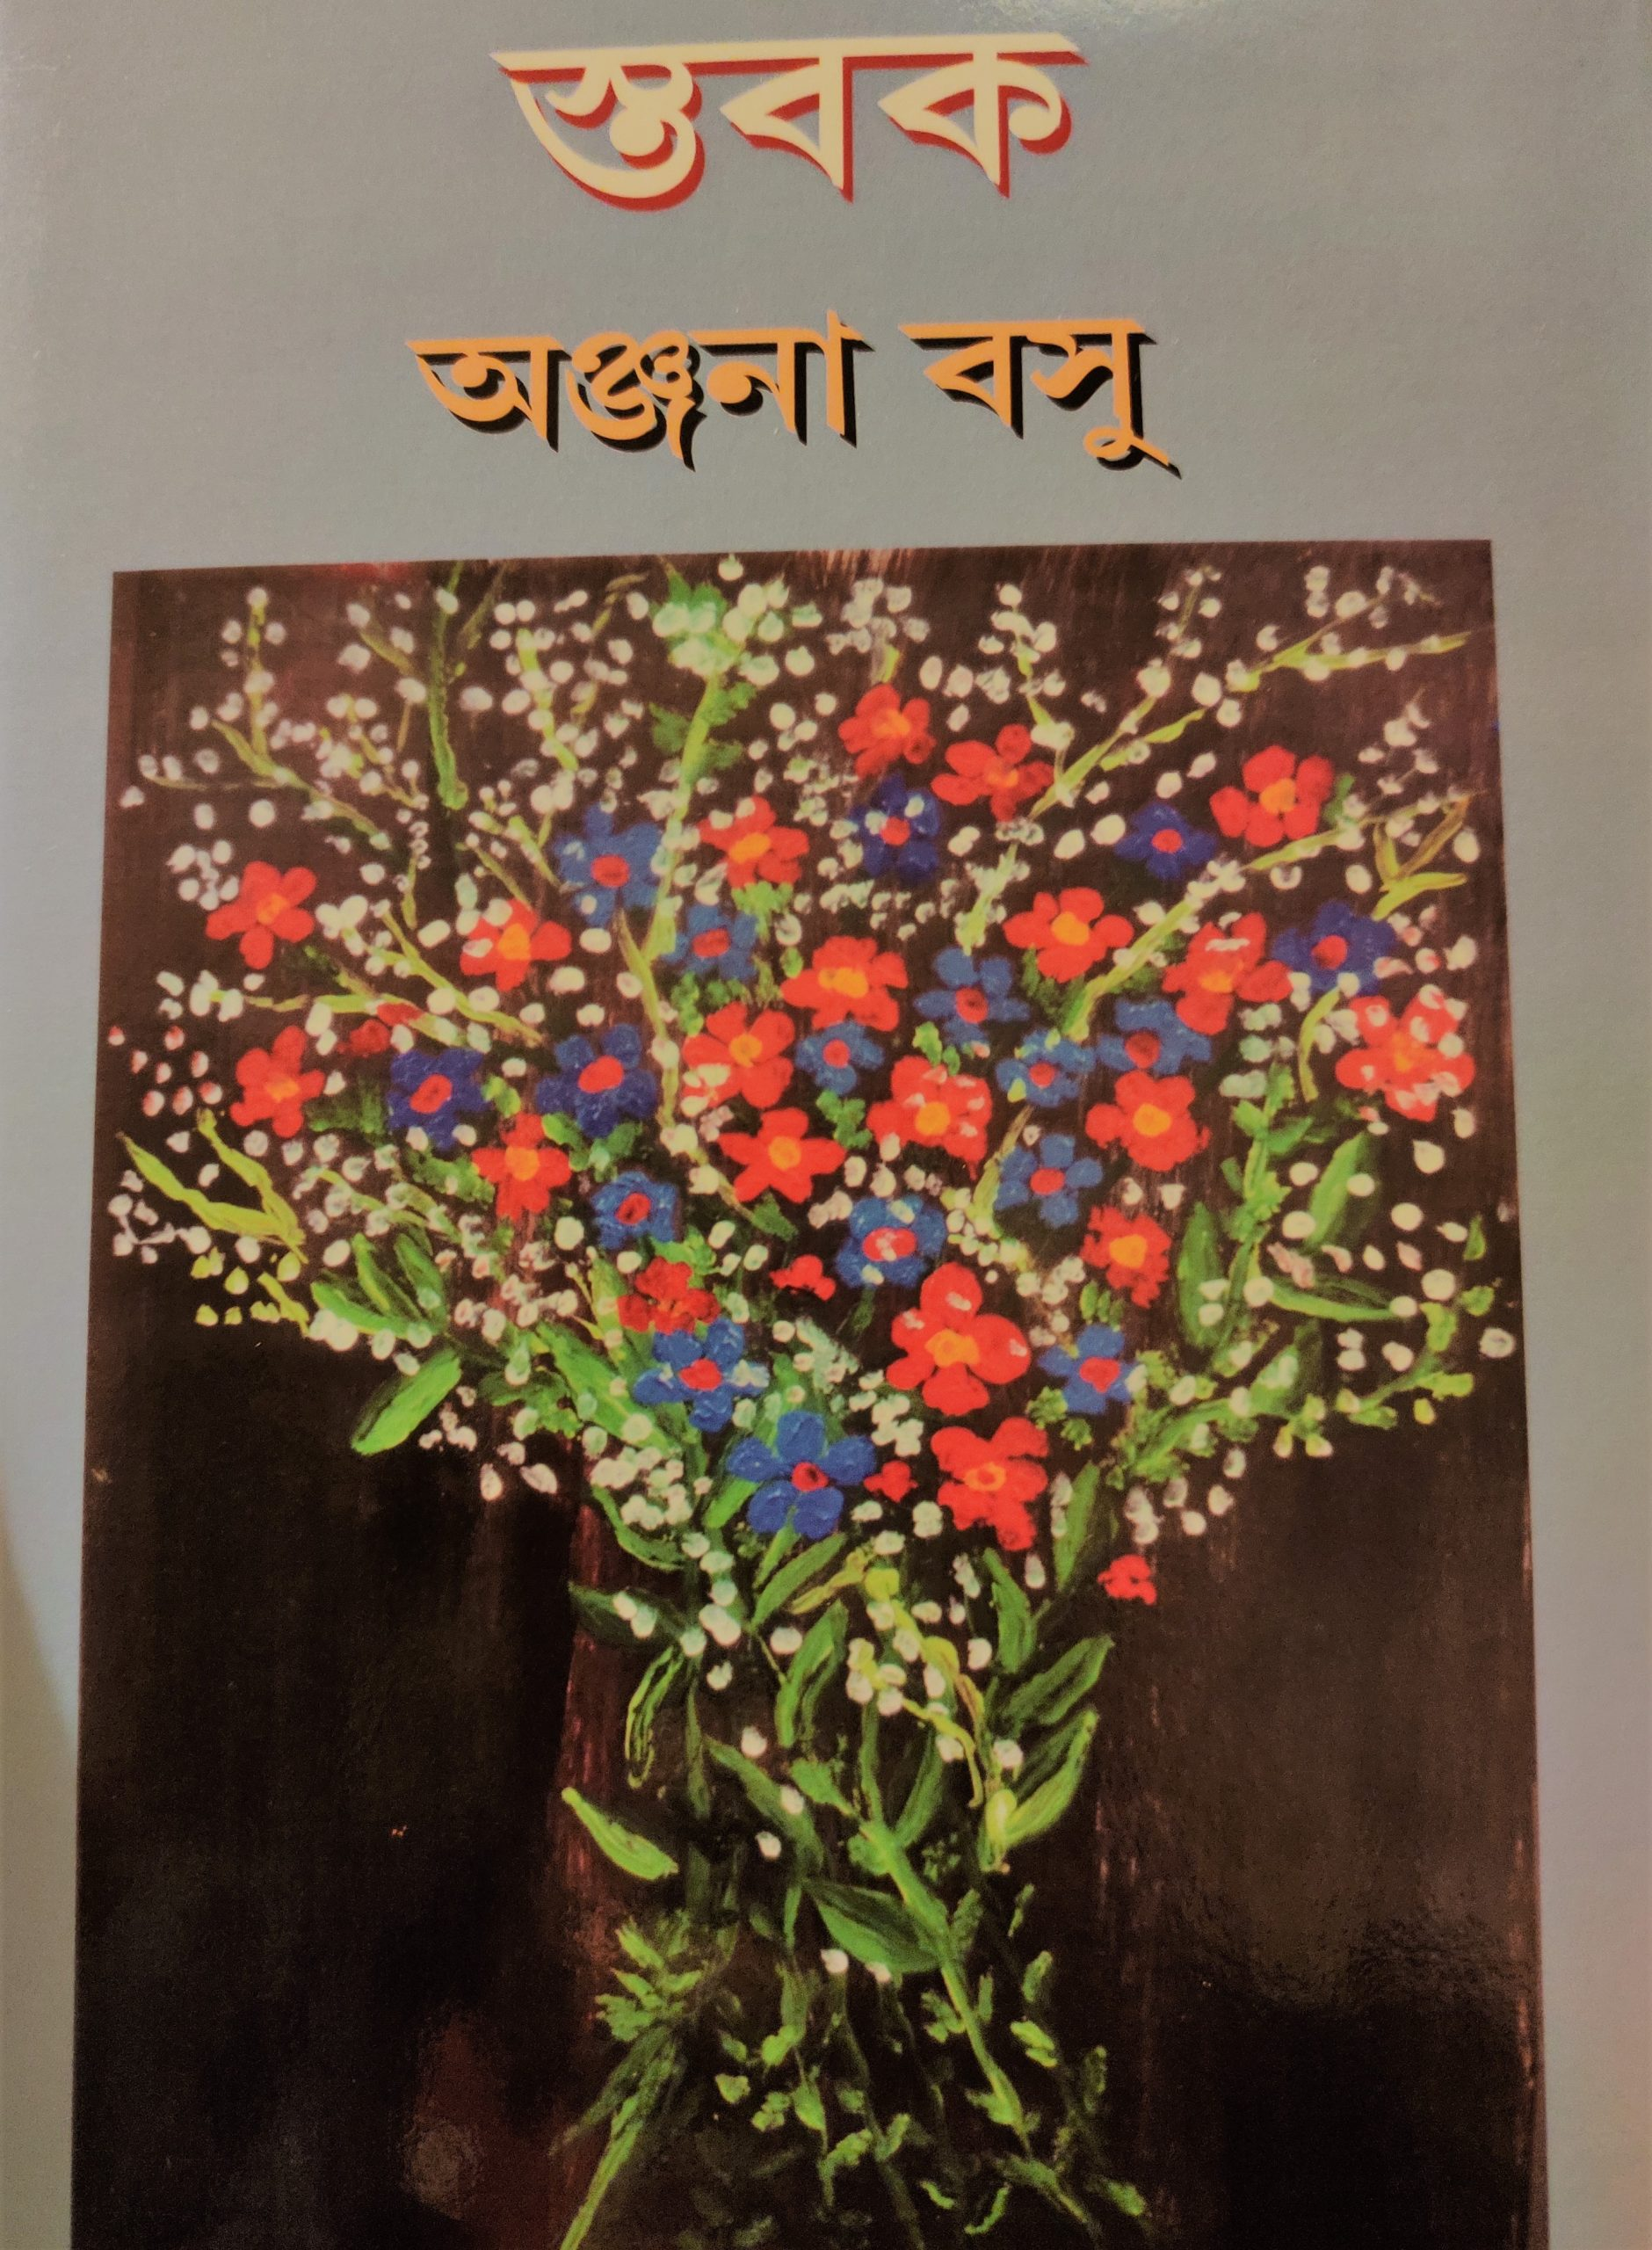 stabak book cover স্তবক কবিতার বই